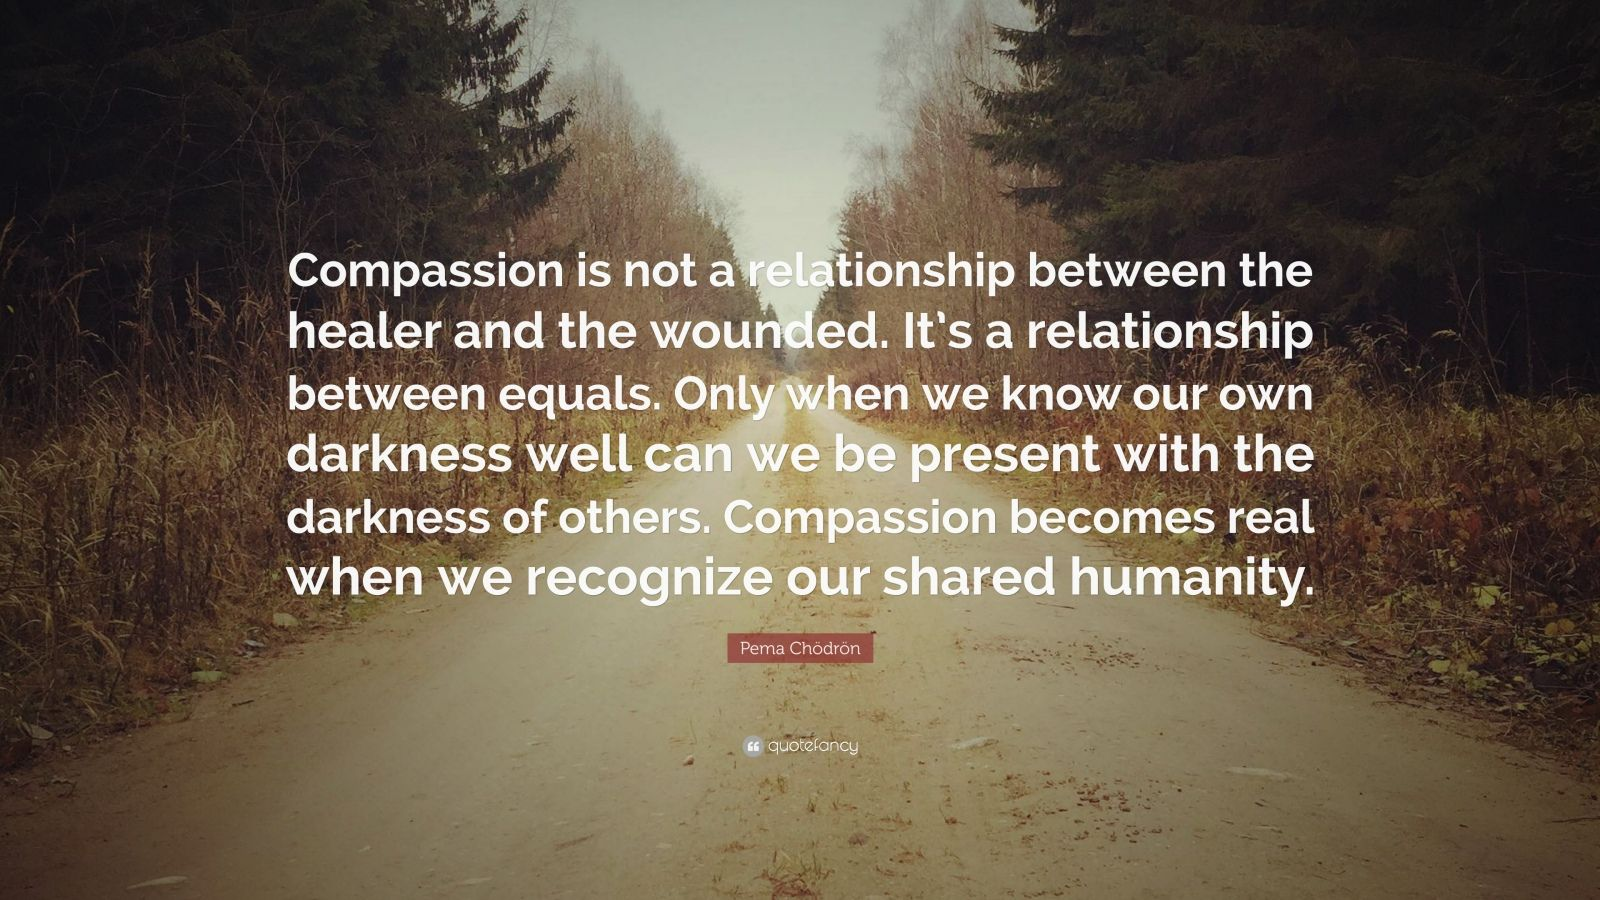 """Pema Chödrön Quote: """"Compassion is not a relationship between the healer and the wounded. It's a relationship between equals. Only when we know our own darkness well can we be present with the darkness of others. Compassion becomes real when we recognize our shared humanity."""""""